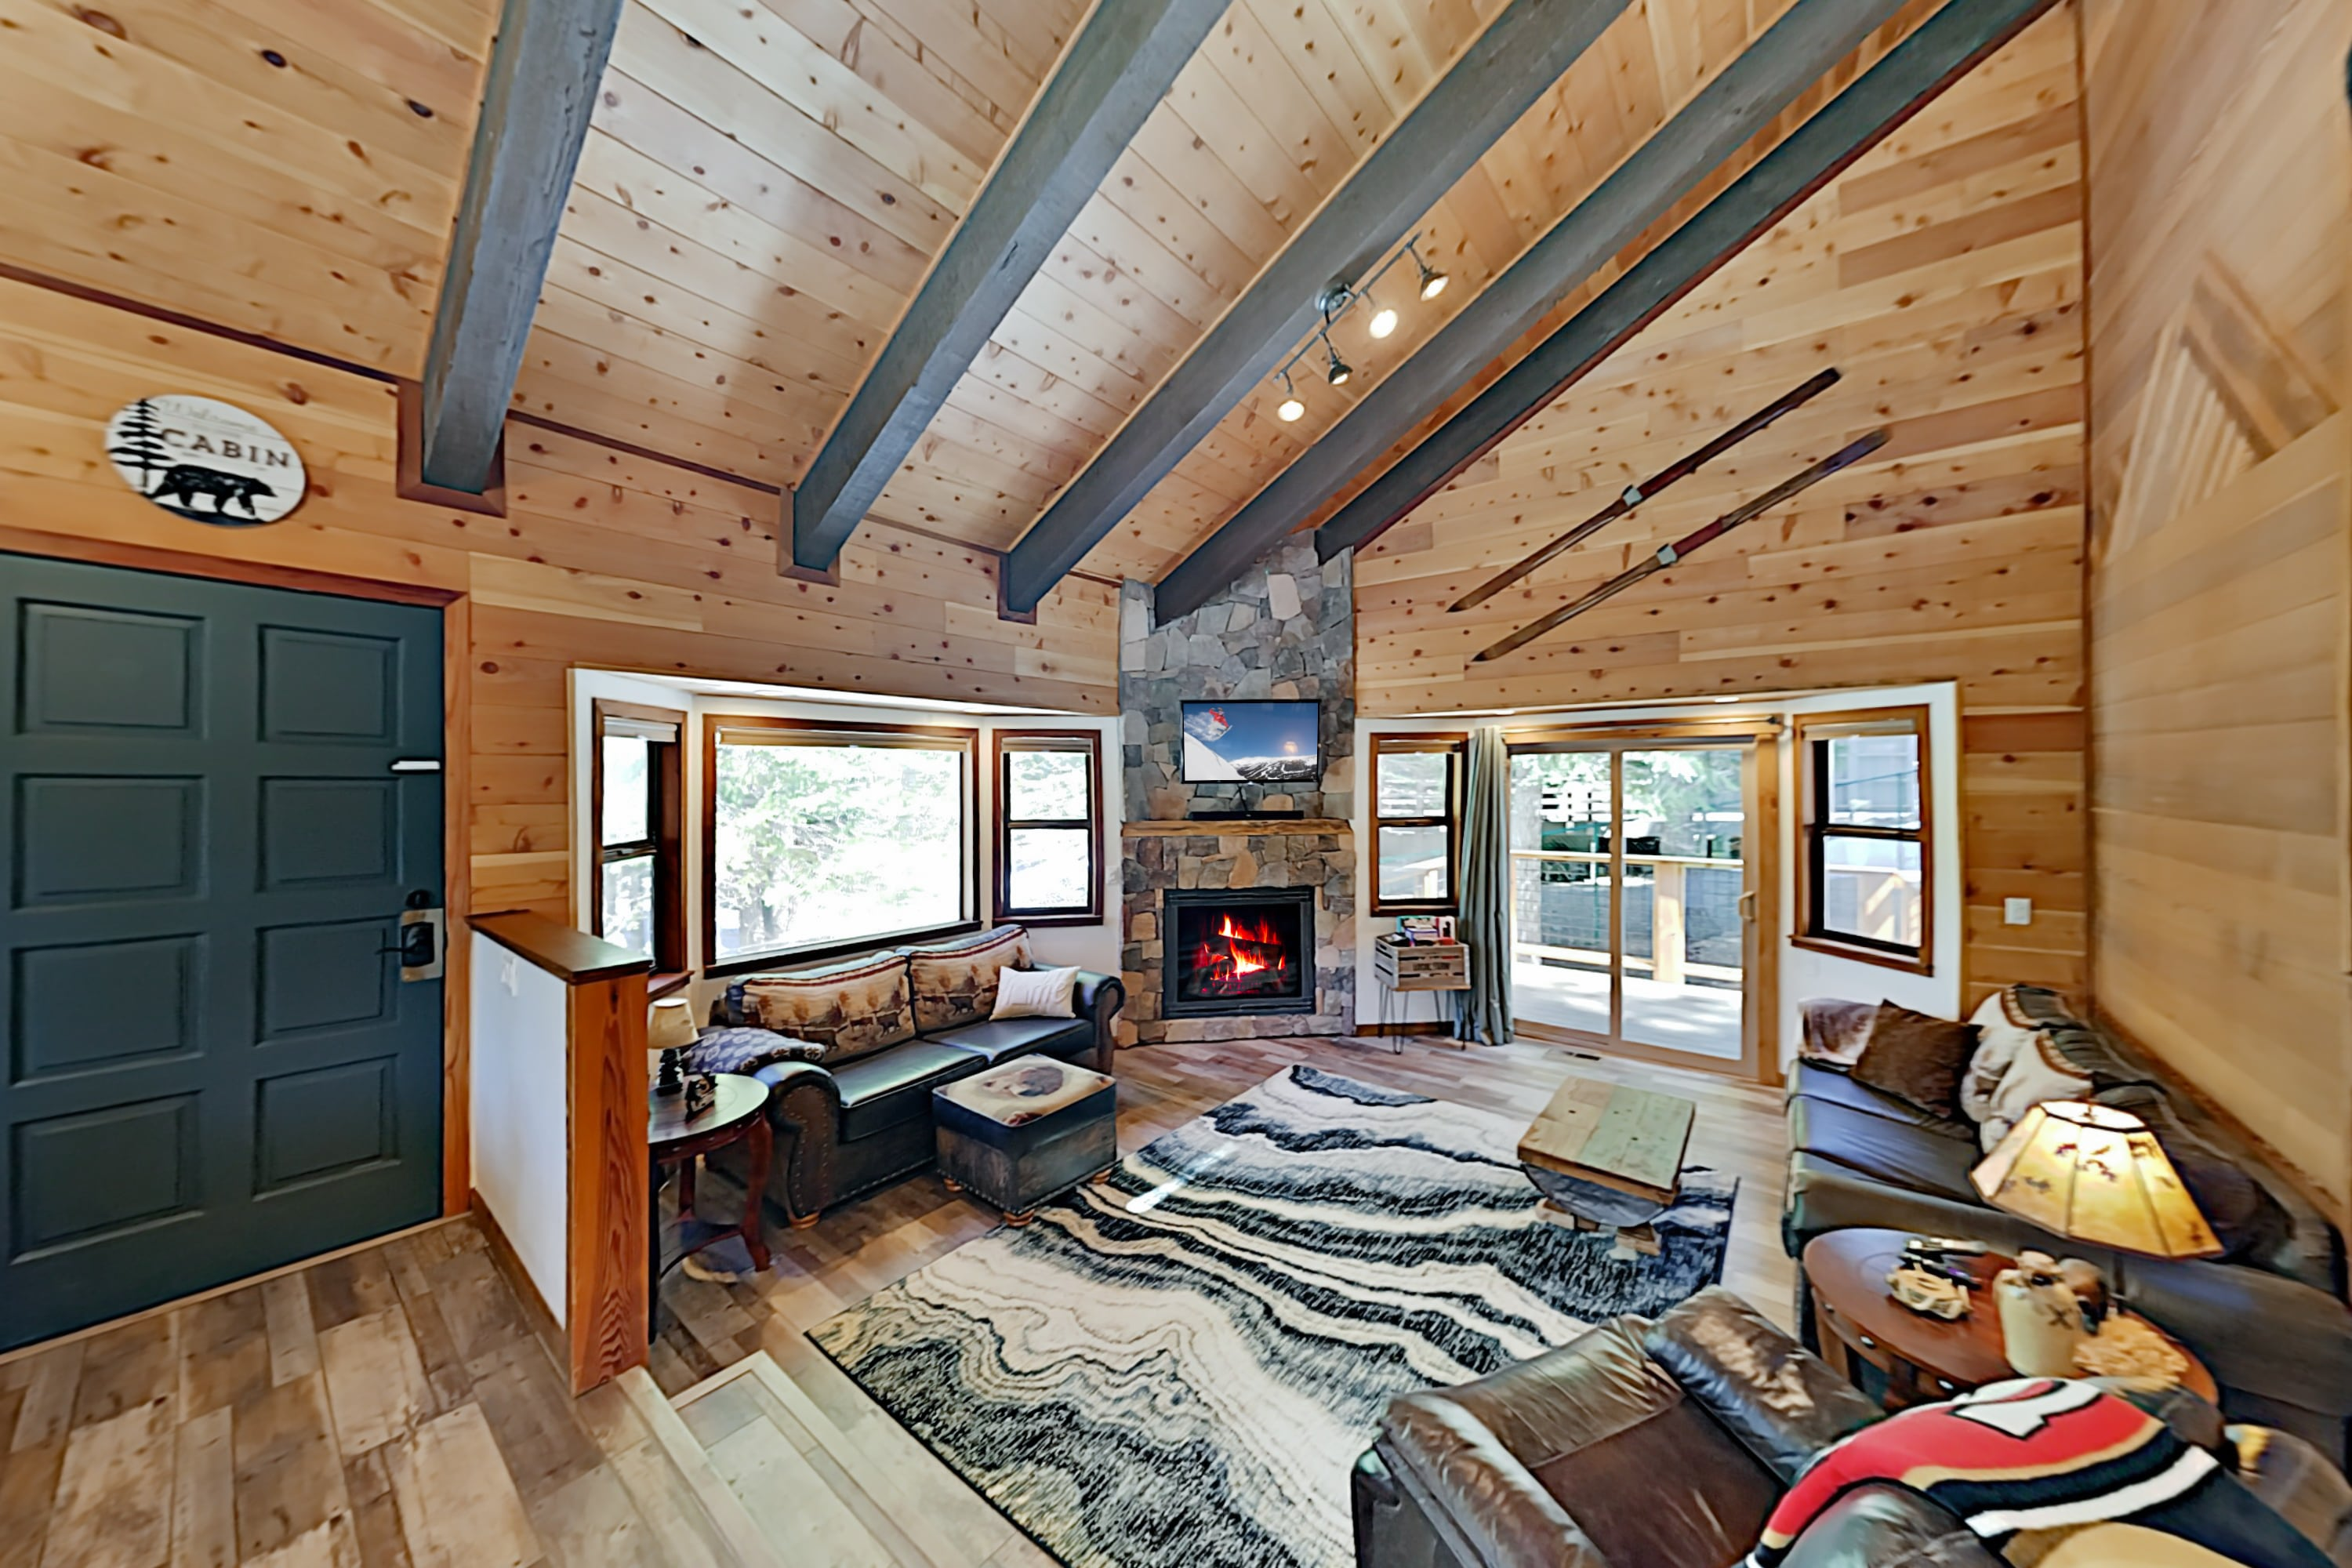 Property Image 1 - Cozy All-Season Cabin Near Shops, Beach, Skiing